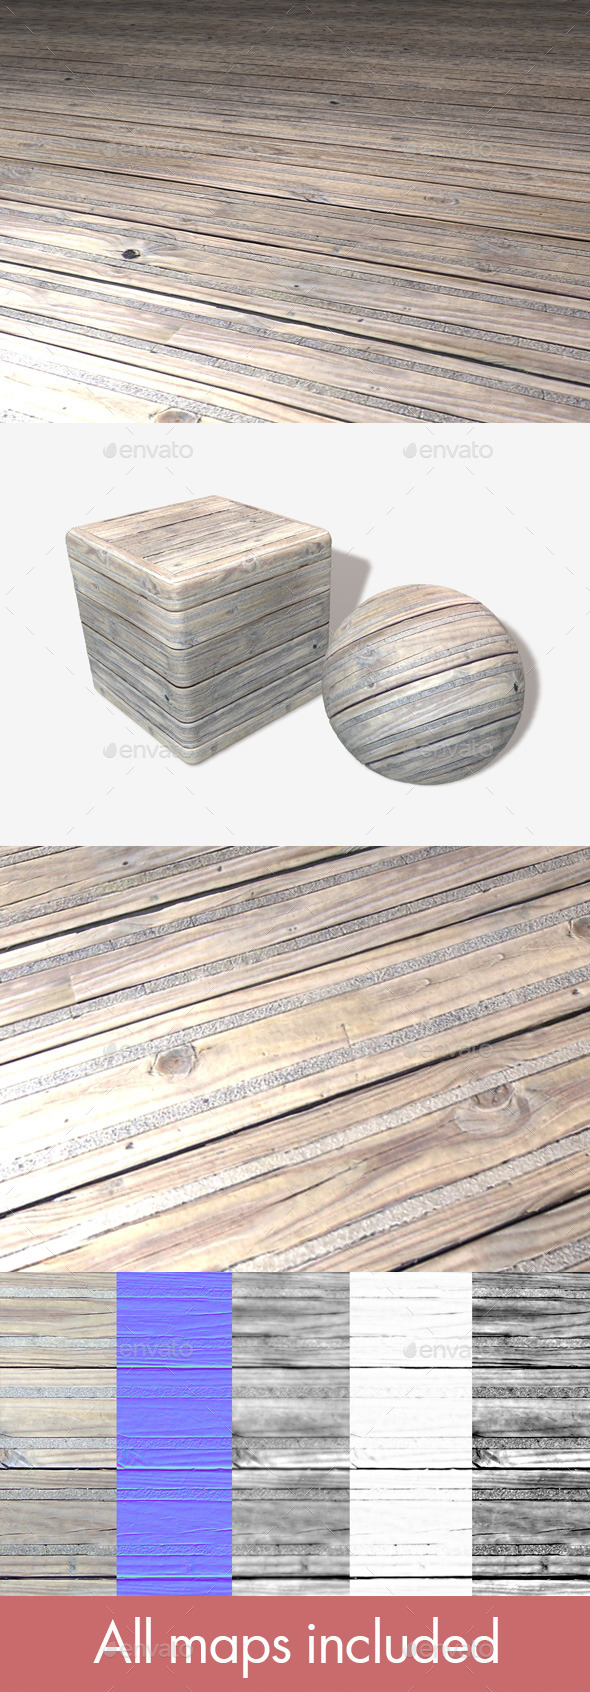 Wooden Floor Grip Panels Seamless Texture - 3DOcean Item for Sale